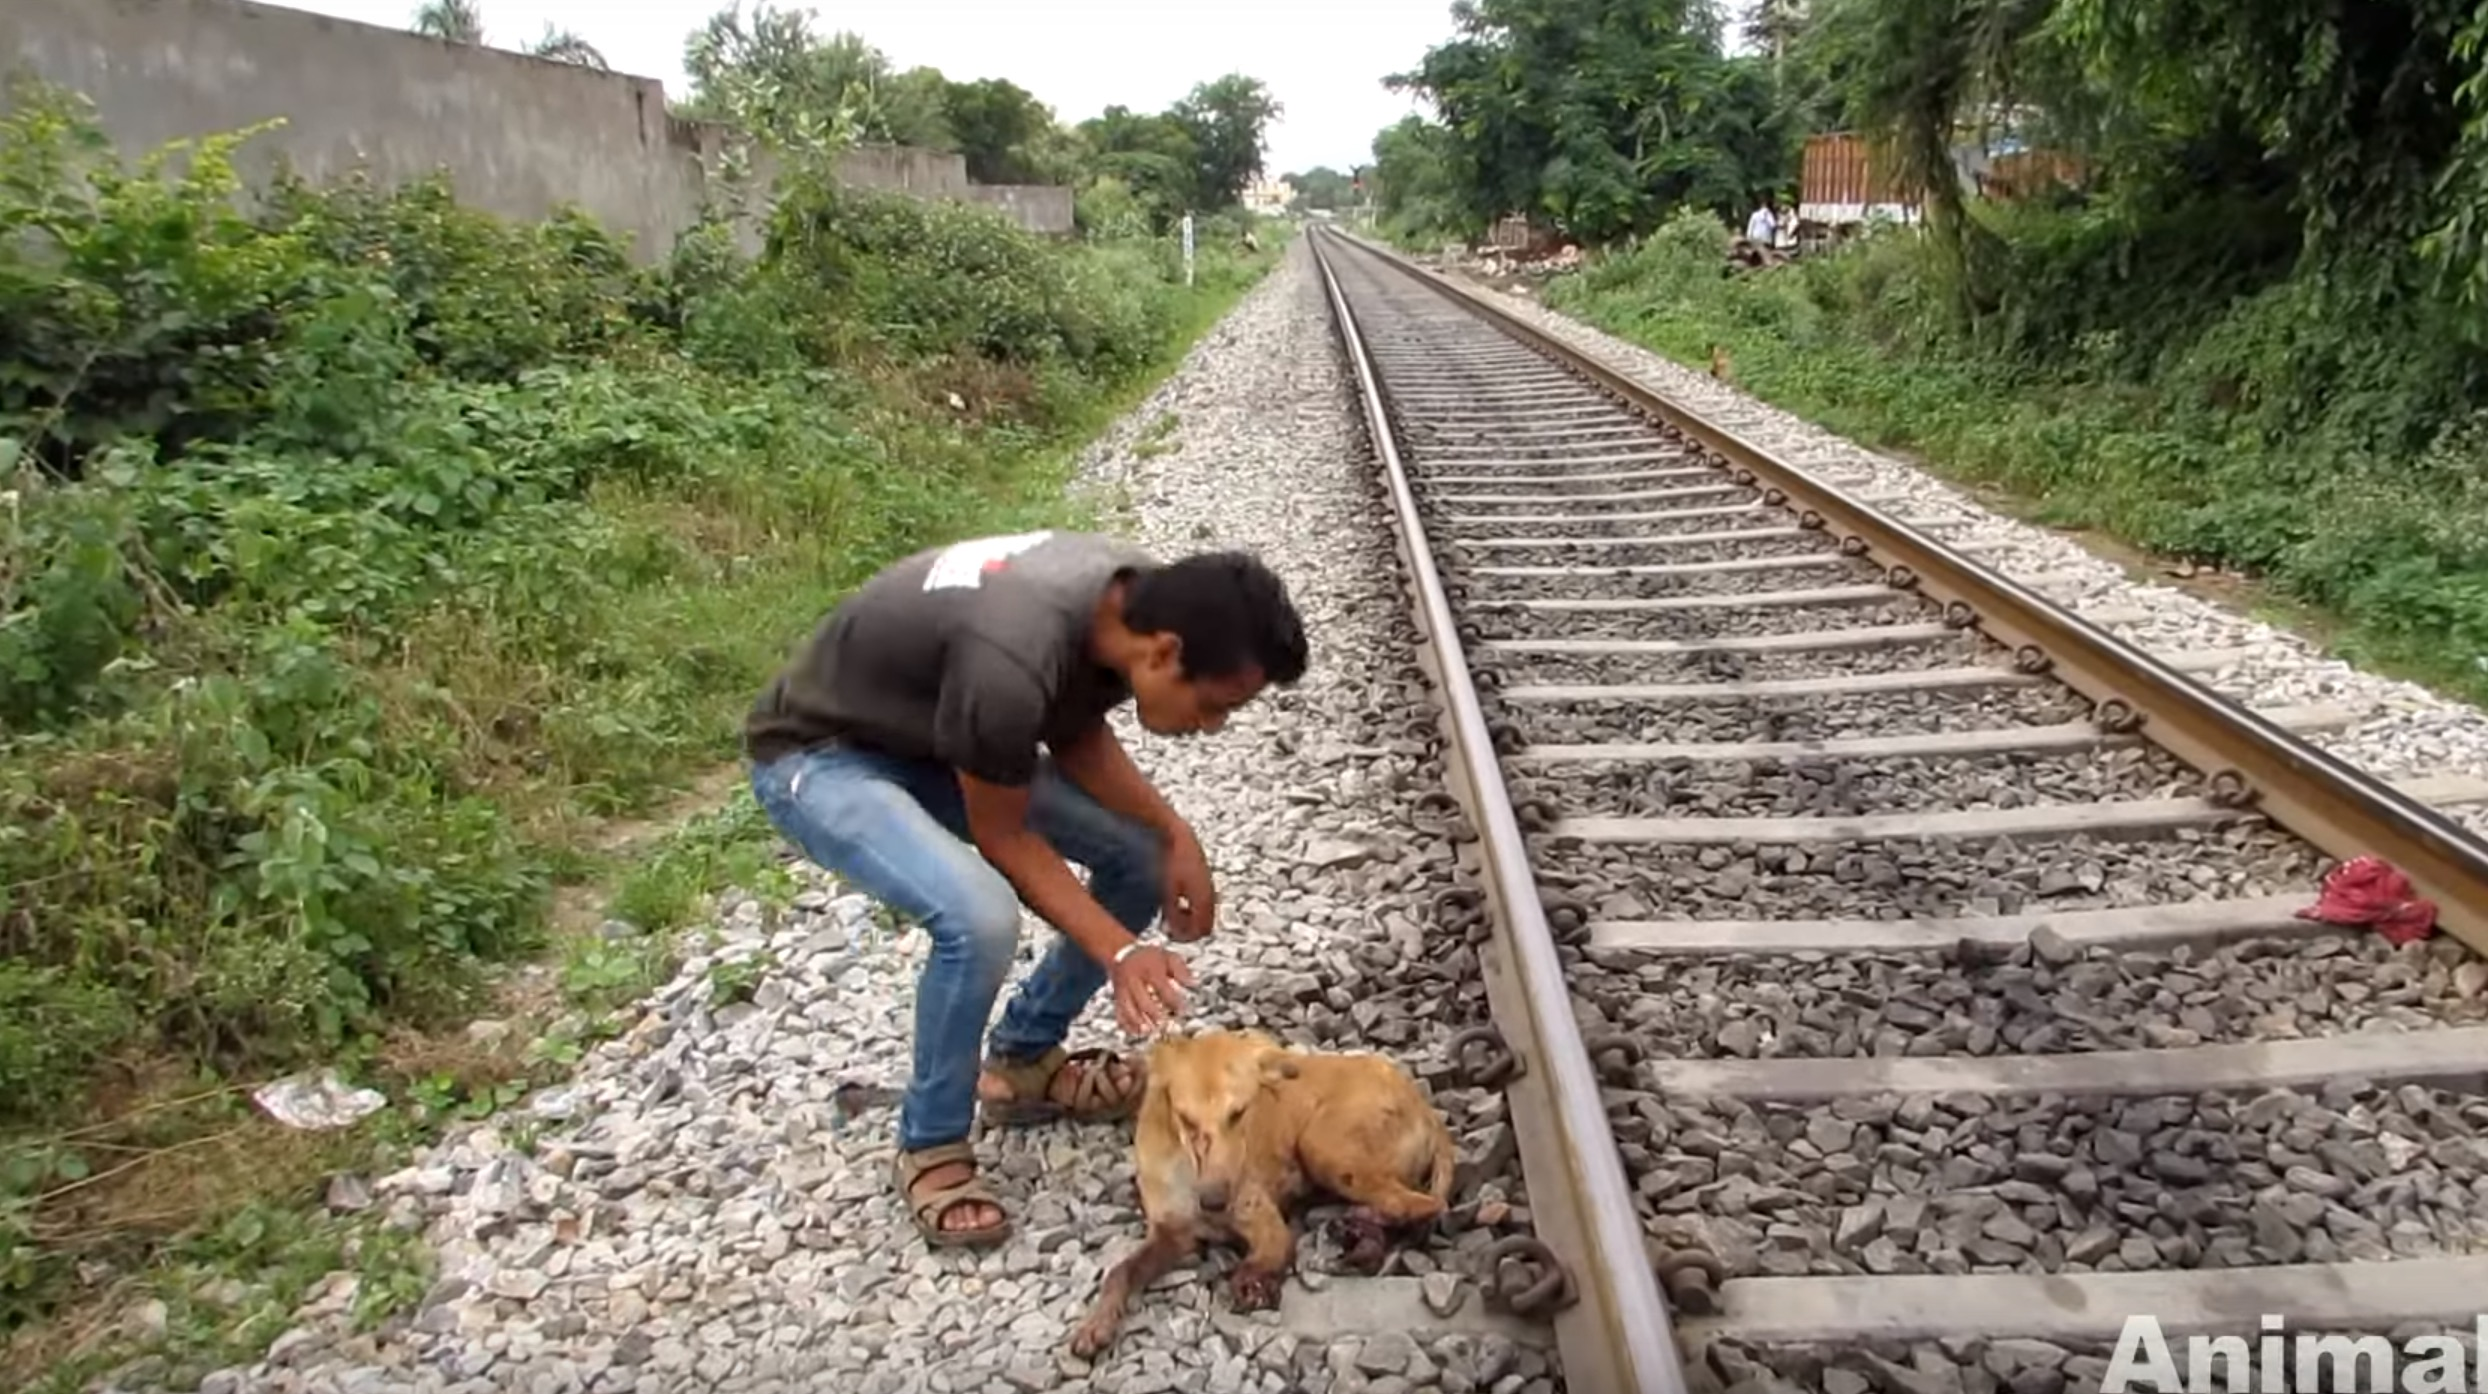 animal-aid-chien-train-blessures-7